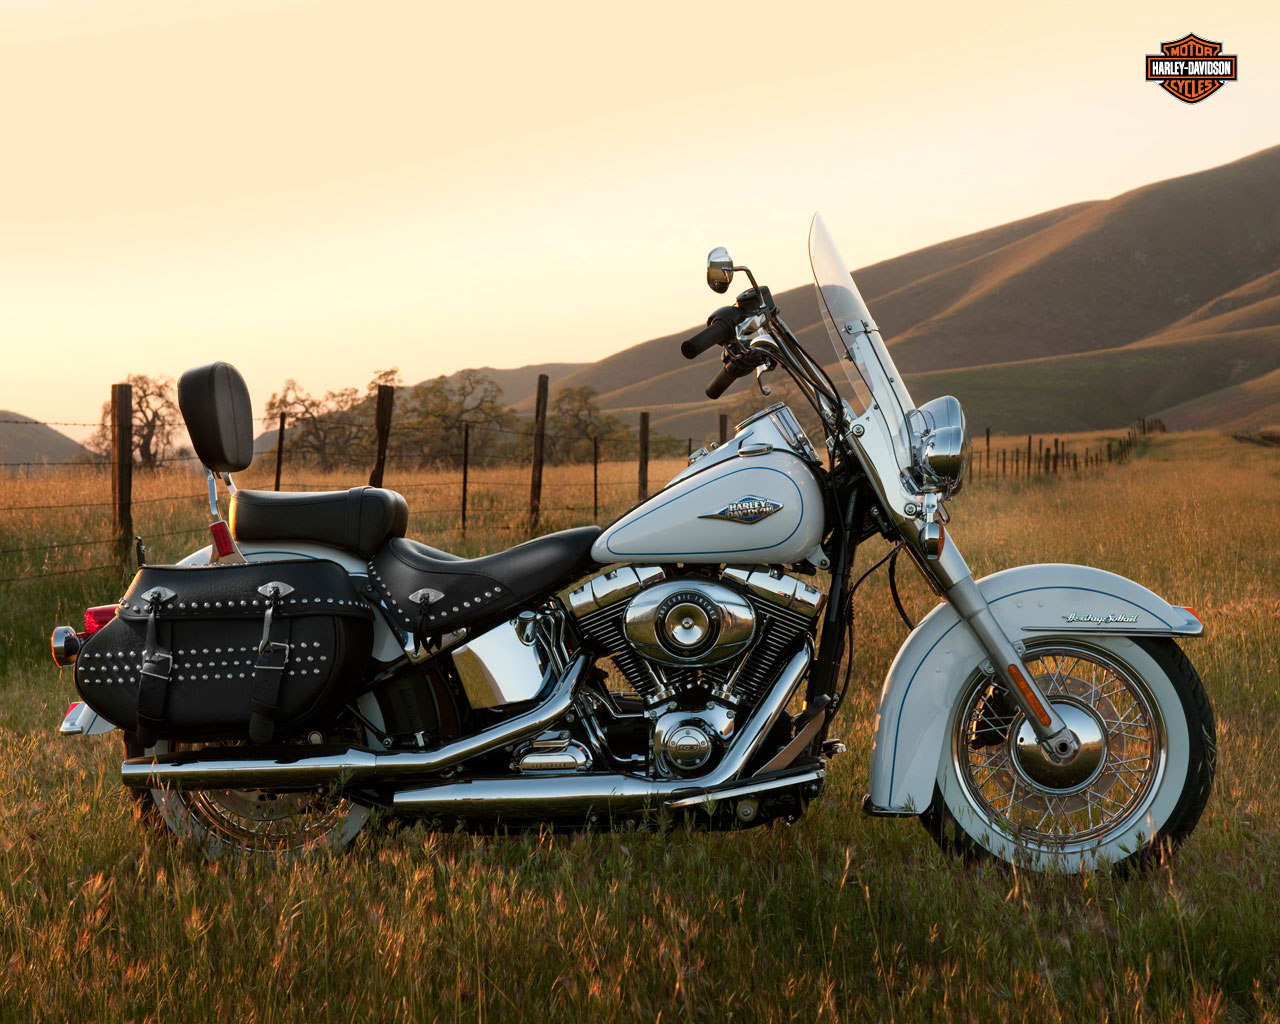 Tranny for hd softail